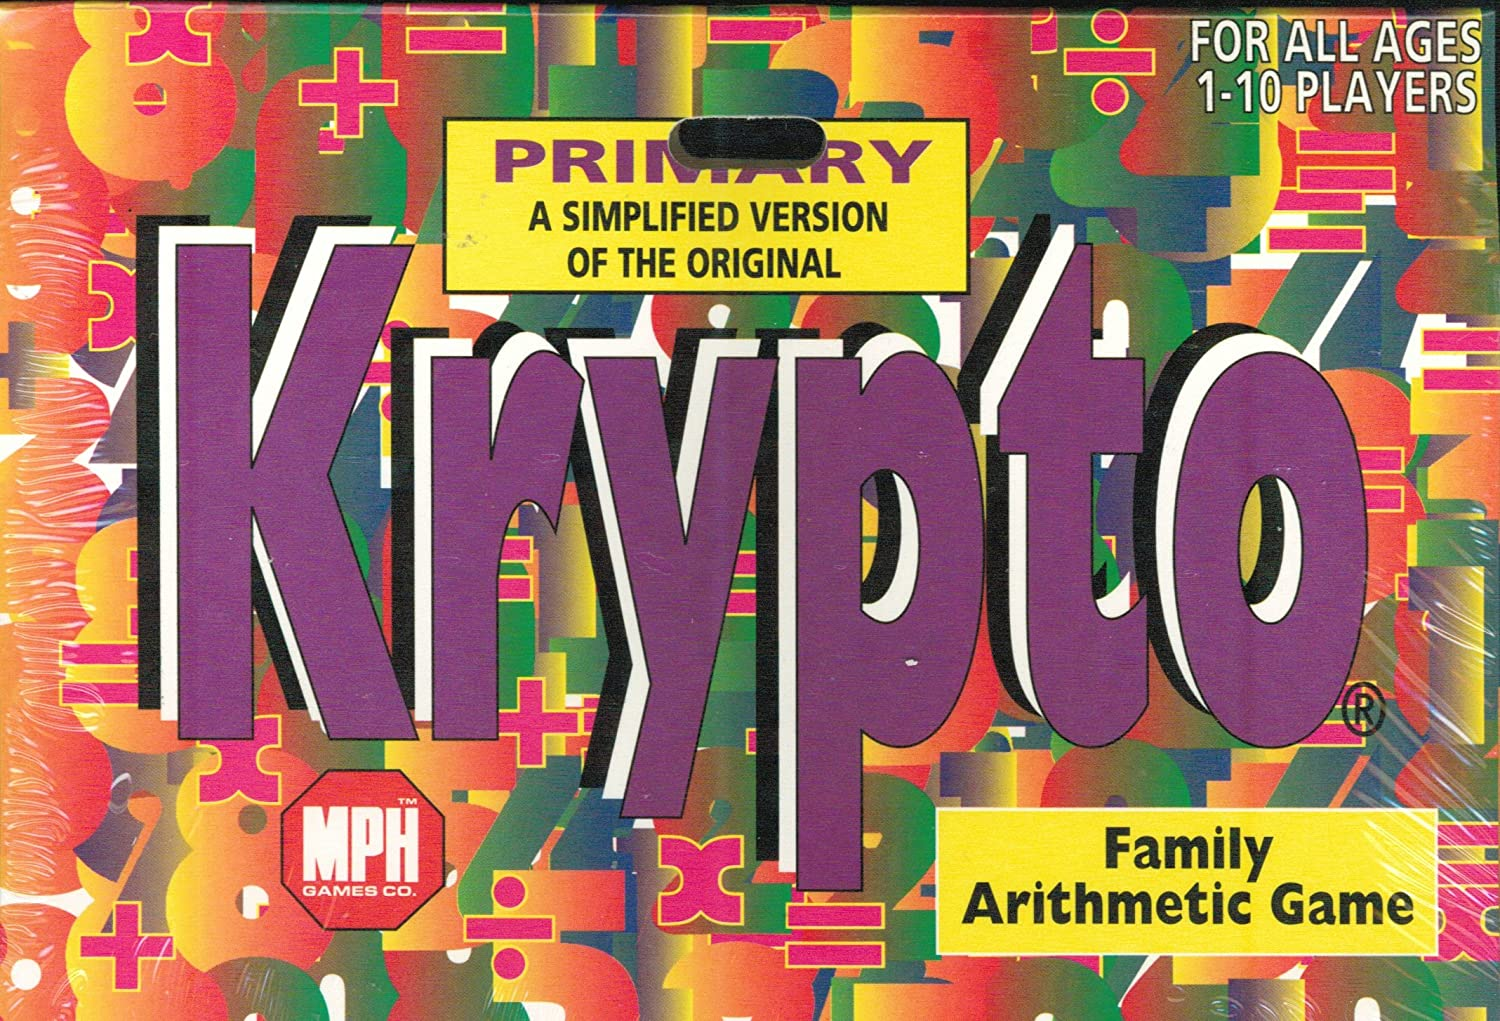 Amazon.com: Primary Krypto: Family Arithmetic Game by MPH Games ...